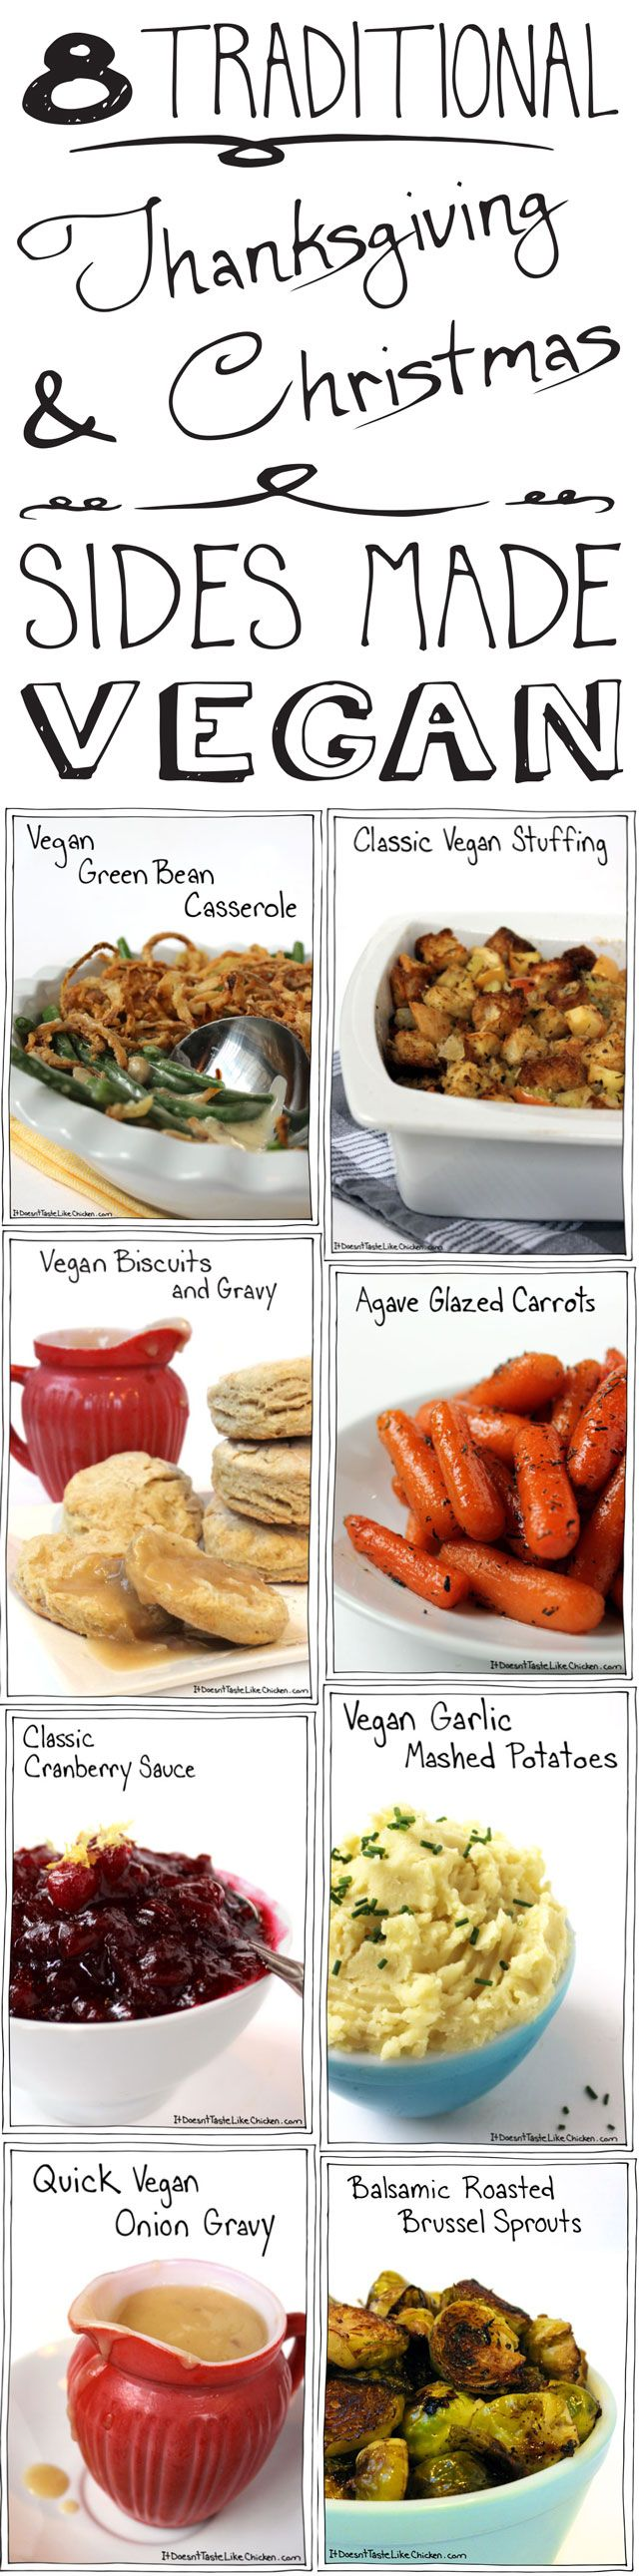 8 Traditional Thanksgiving & Christmas Sides Made Vegan. Delicious enough for everyone! Seriously, give me some of those biscuits and gravy now. #itdoesnttastelikechicken